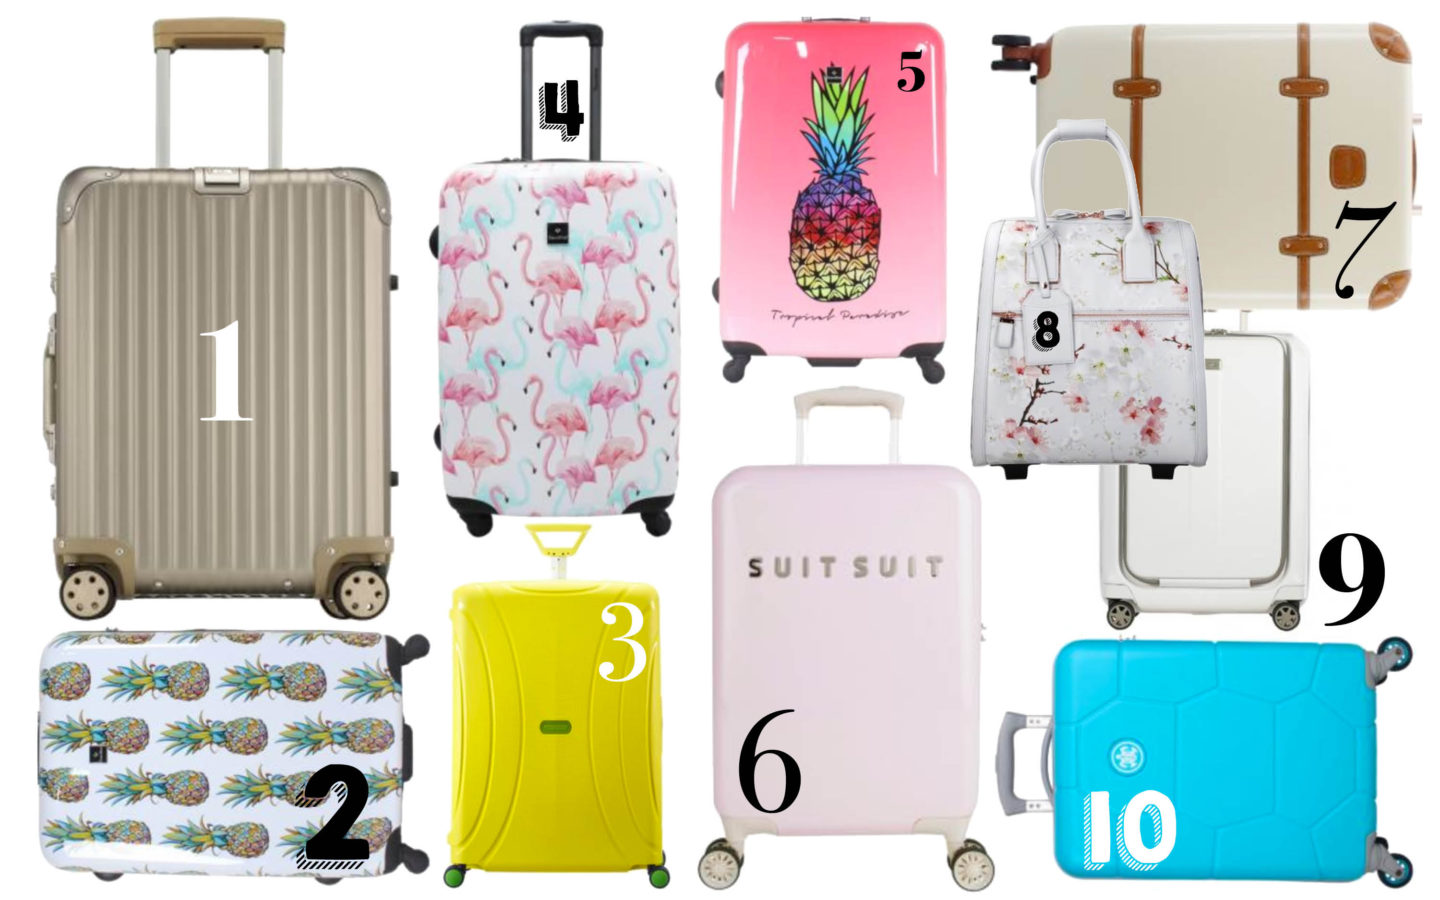 Top 10 most stylish suitcases for travelling